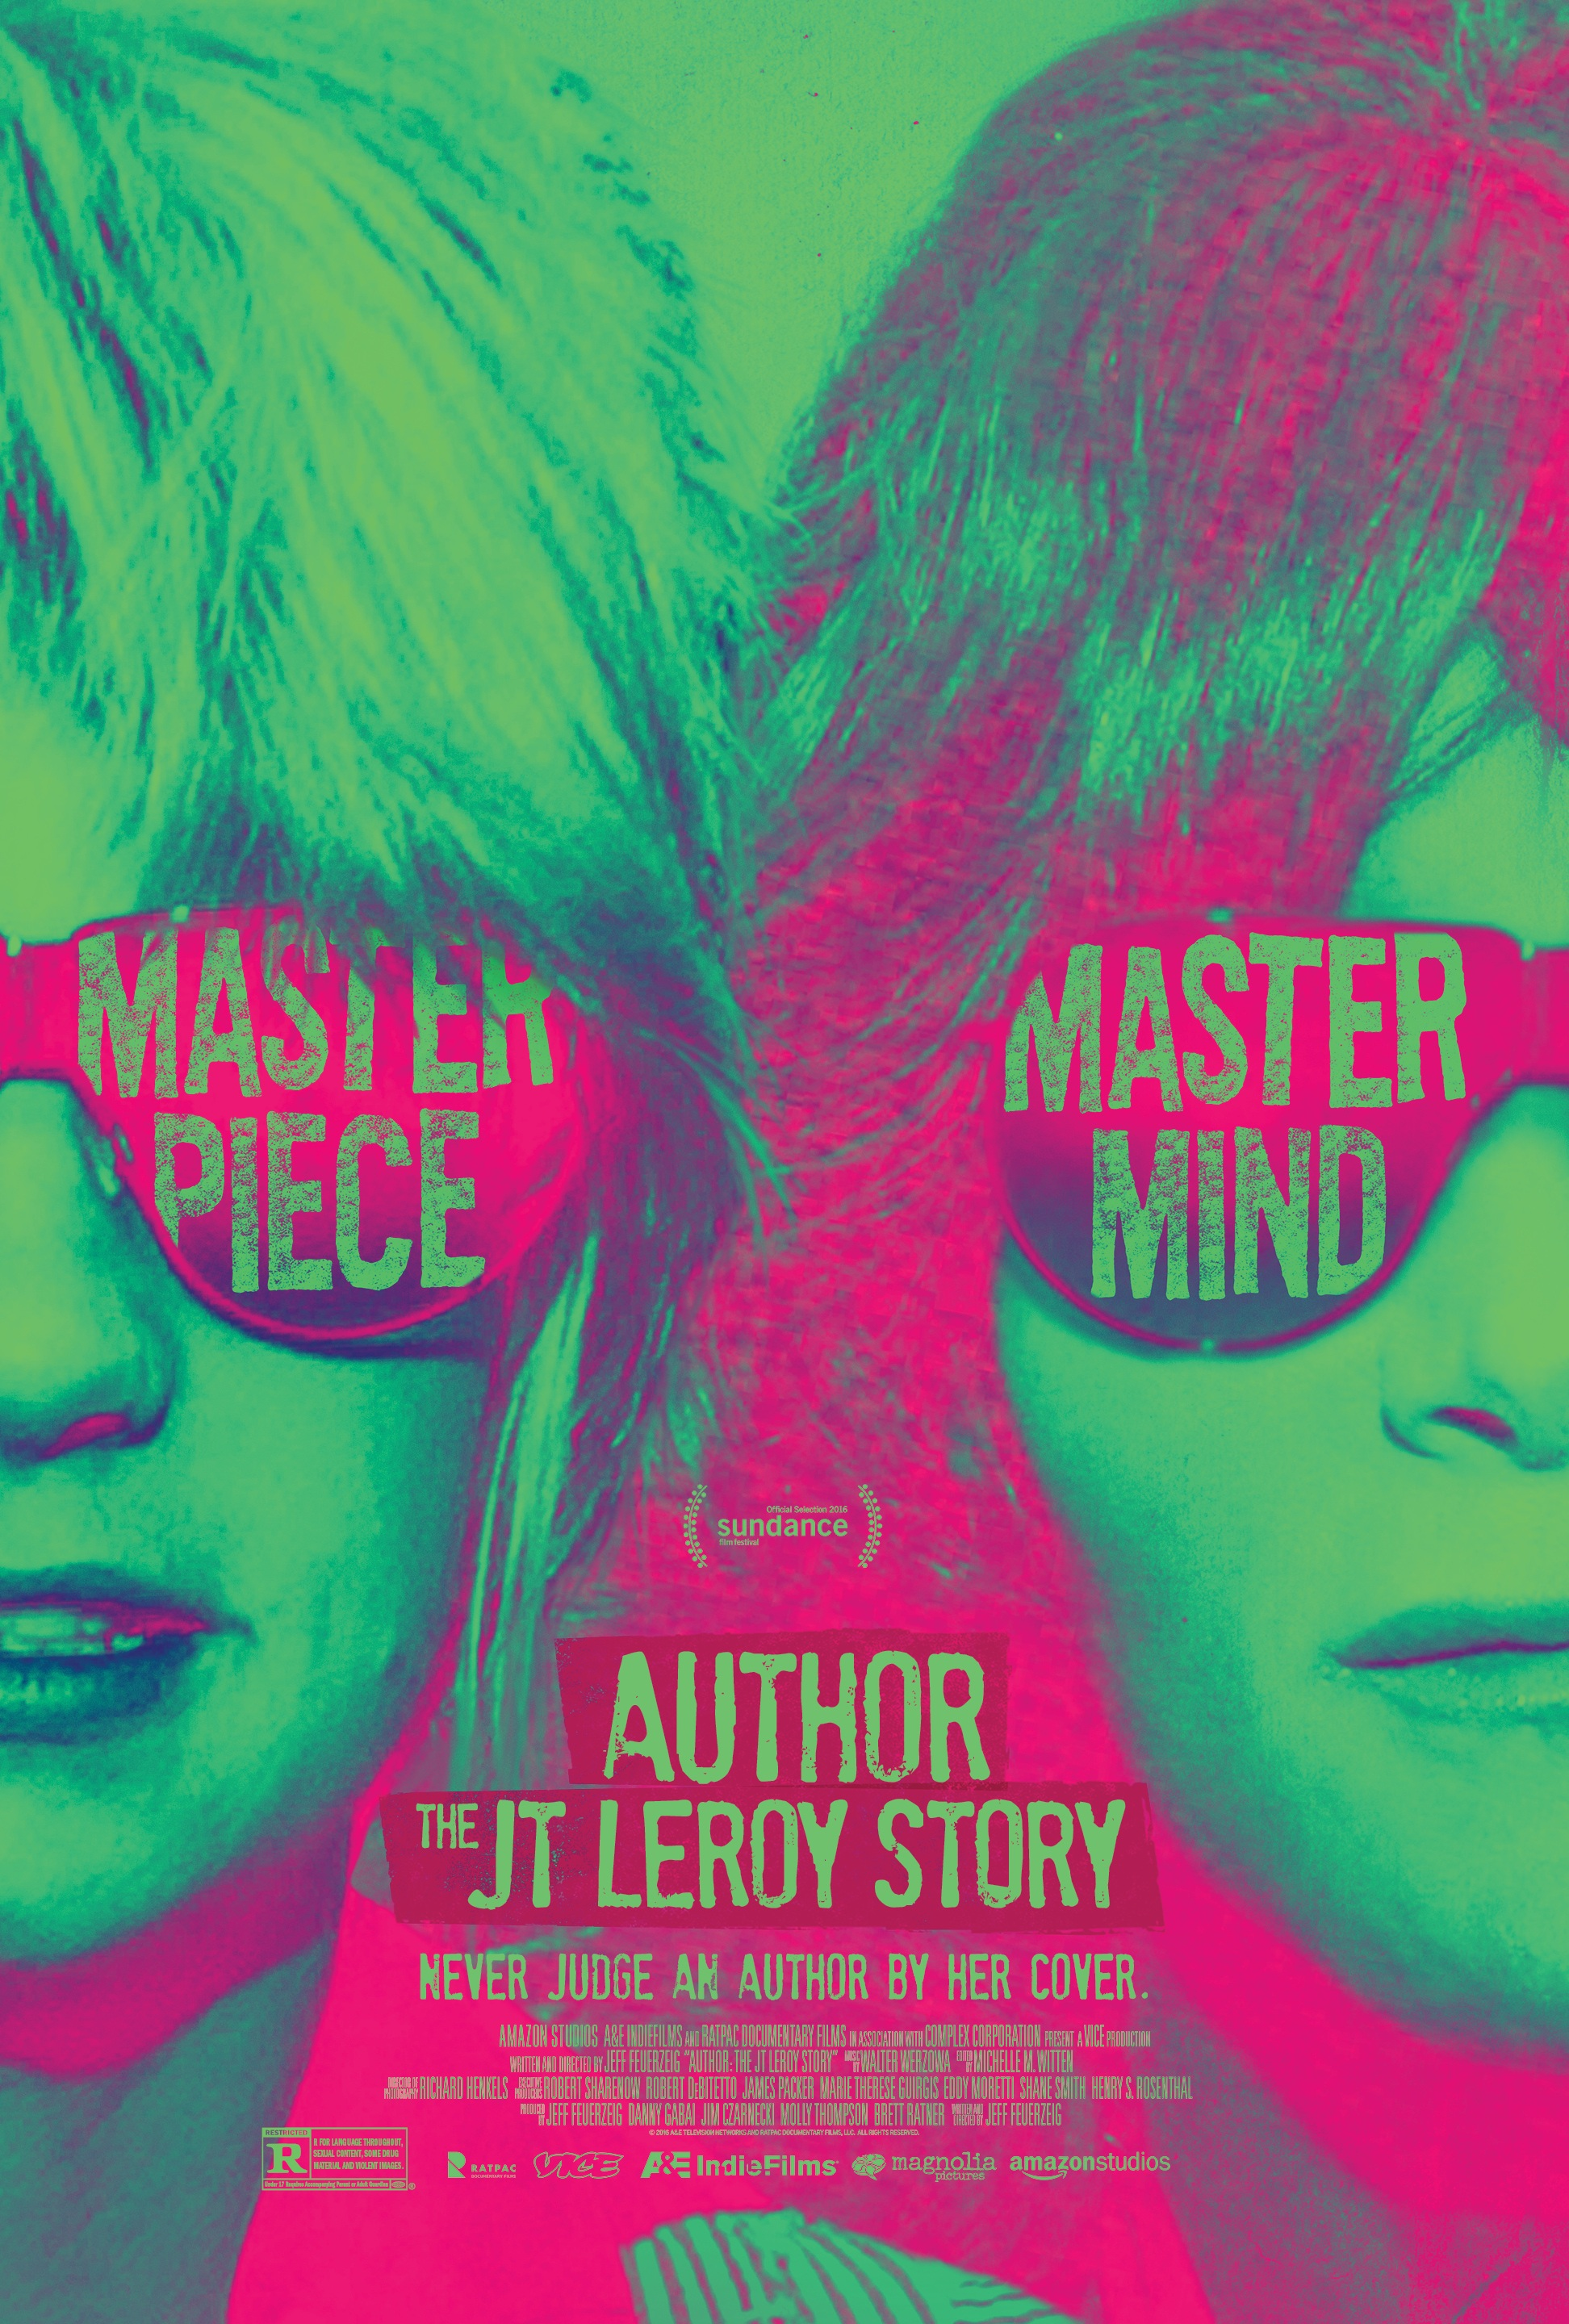 AUTHOR : THE JT LEROY STORY